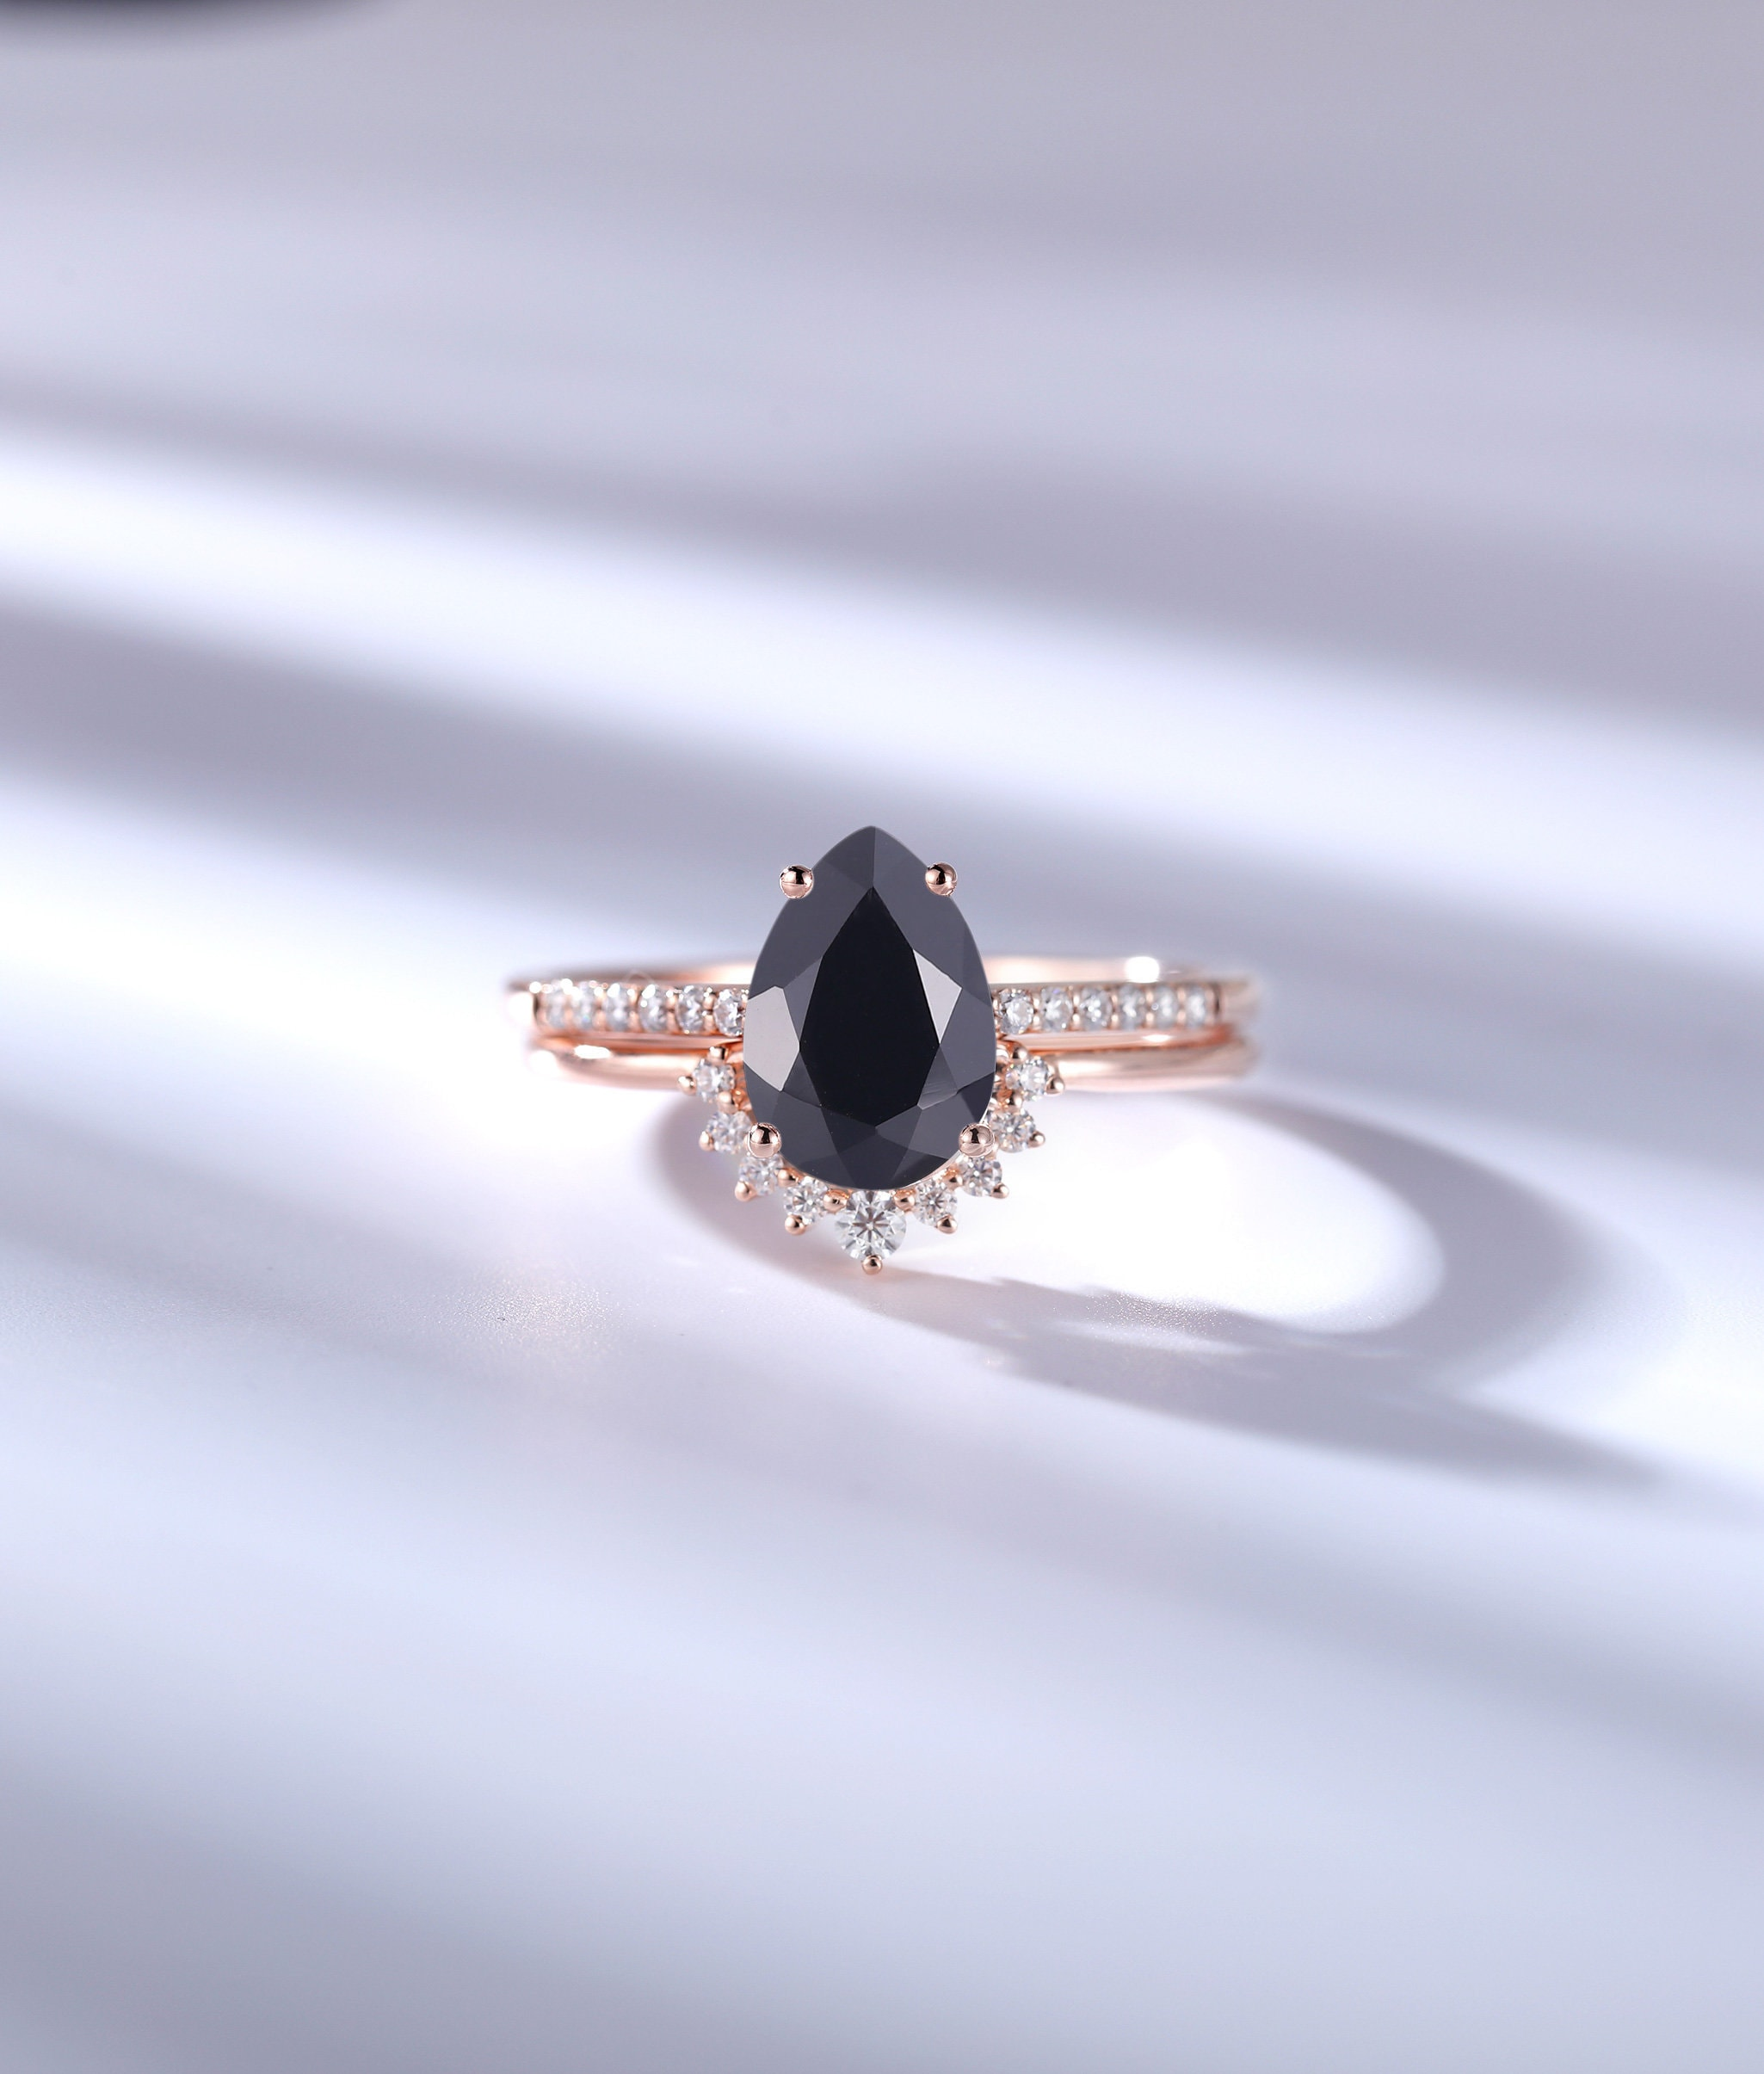 Vintage Black Onyx Engagement Ring Set Pear Shaped Prong Art Deco Rose Gold Curved Wedding Band Unique Anniversary